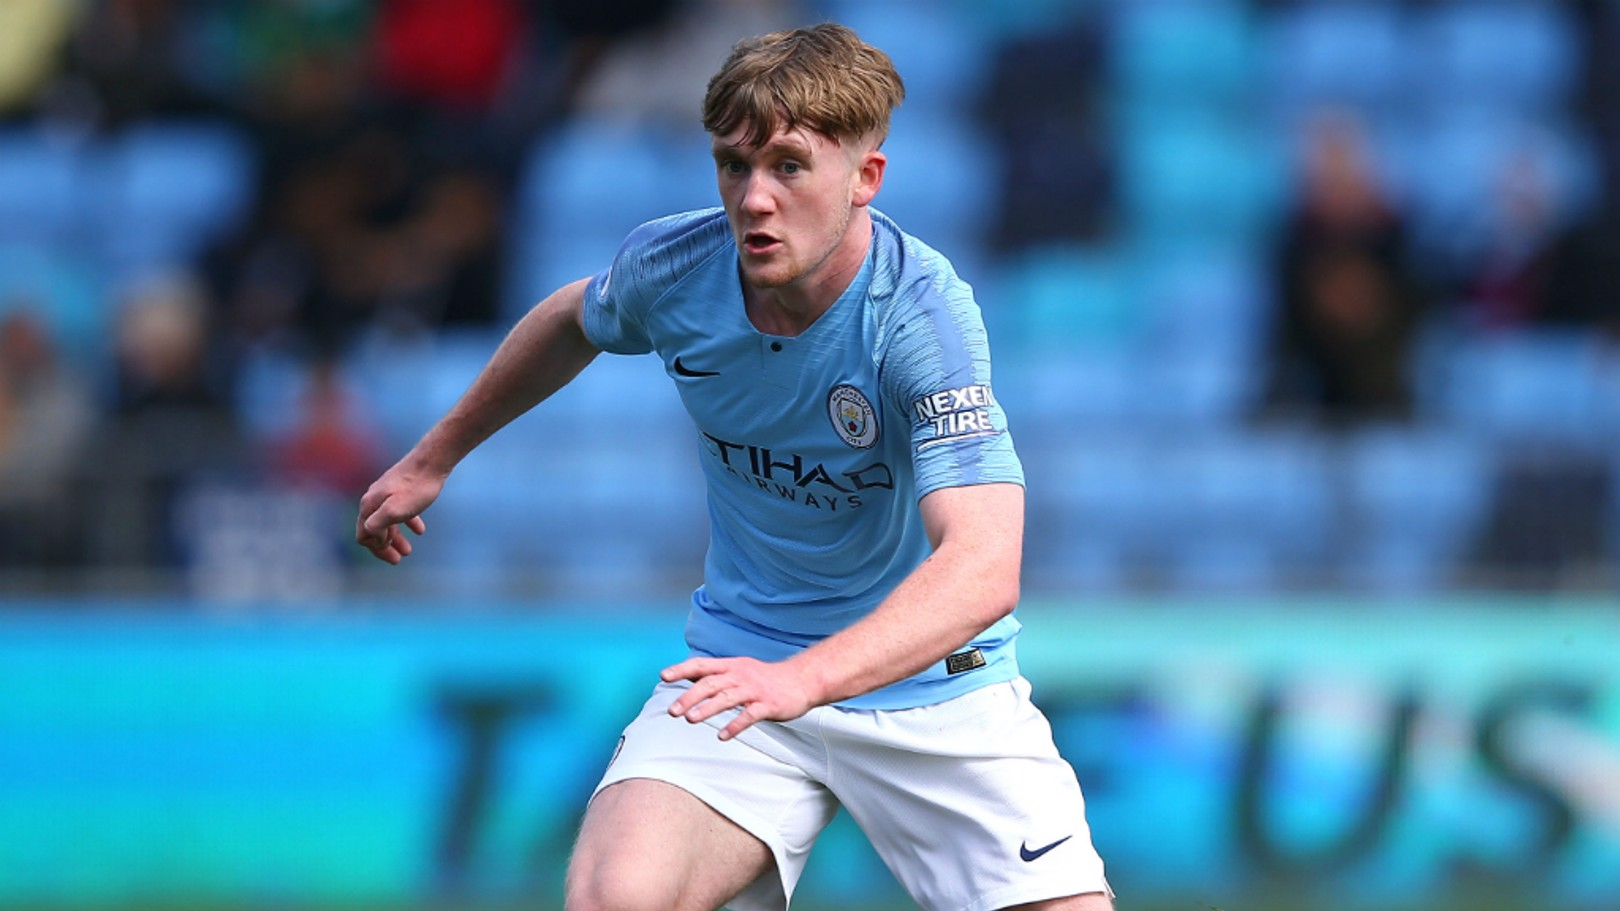 BLUE BLOOD: Tommy Doyle is the grandson of City heroes Glyn Pardoe and Mike Doyle